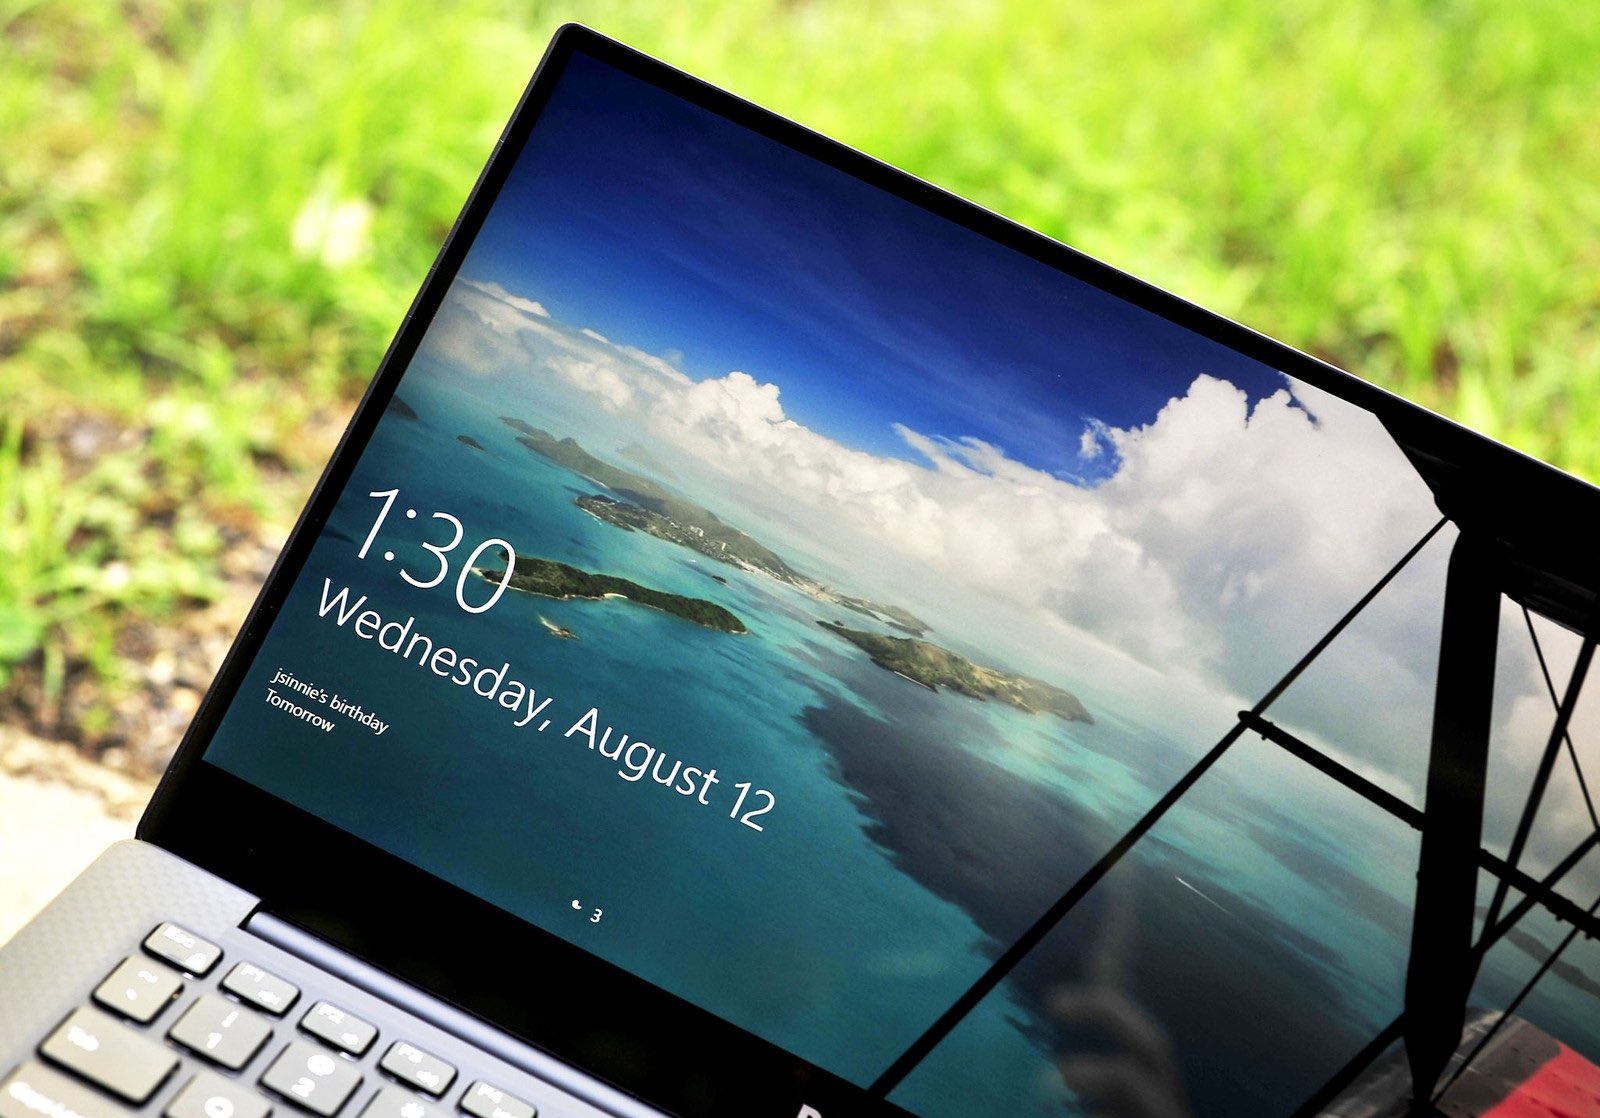 Windows 10 painel de controlo